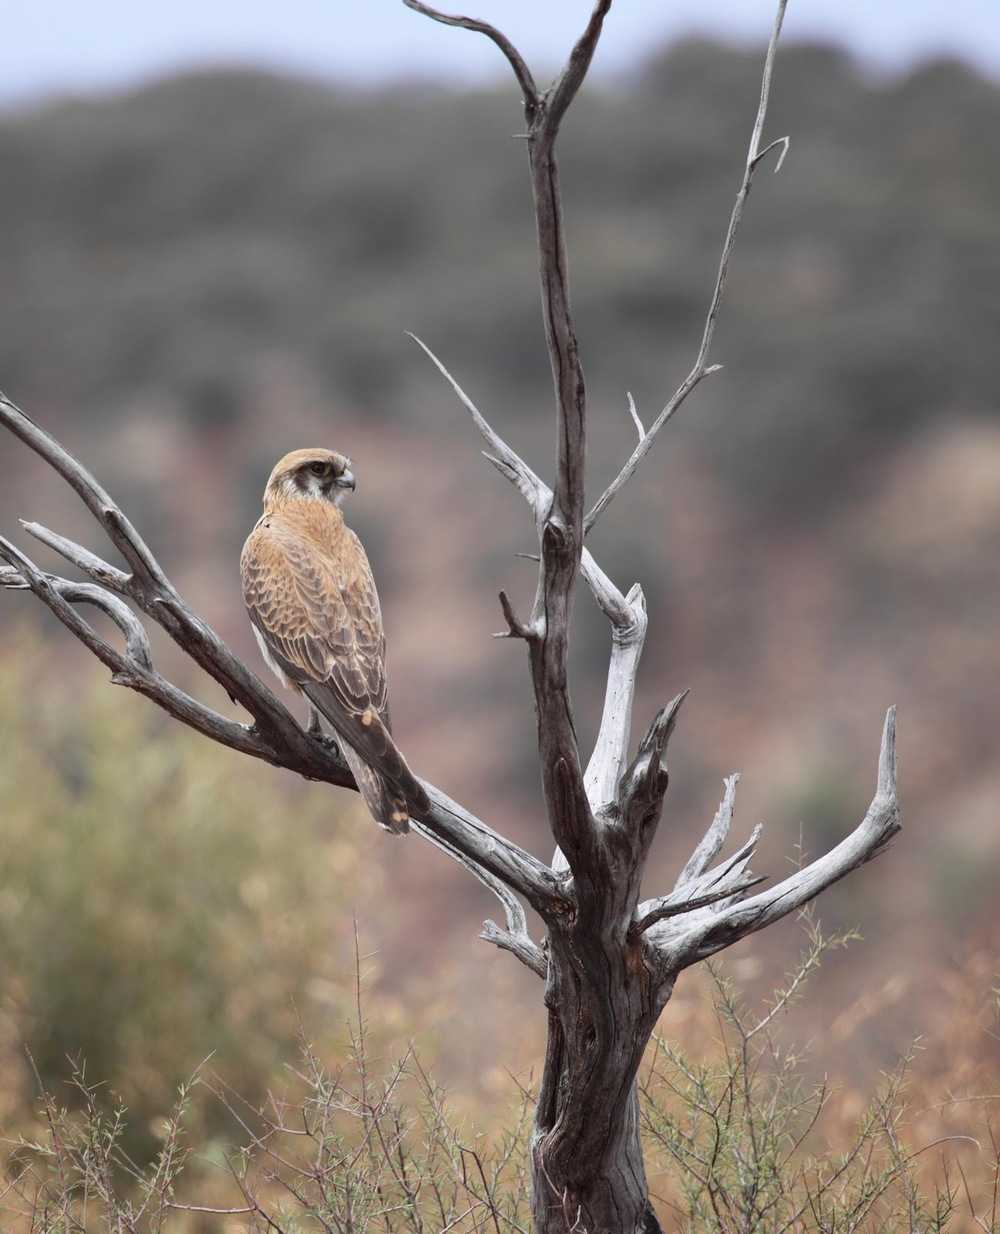 The Brown Falcon on its hunting perch; how you'll most often see them in Central Australia. Note the unfeathered tarsometatarsus (lower leg) just visible.